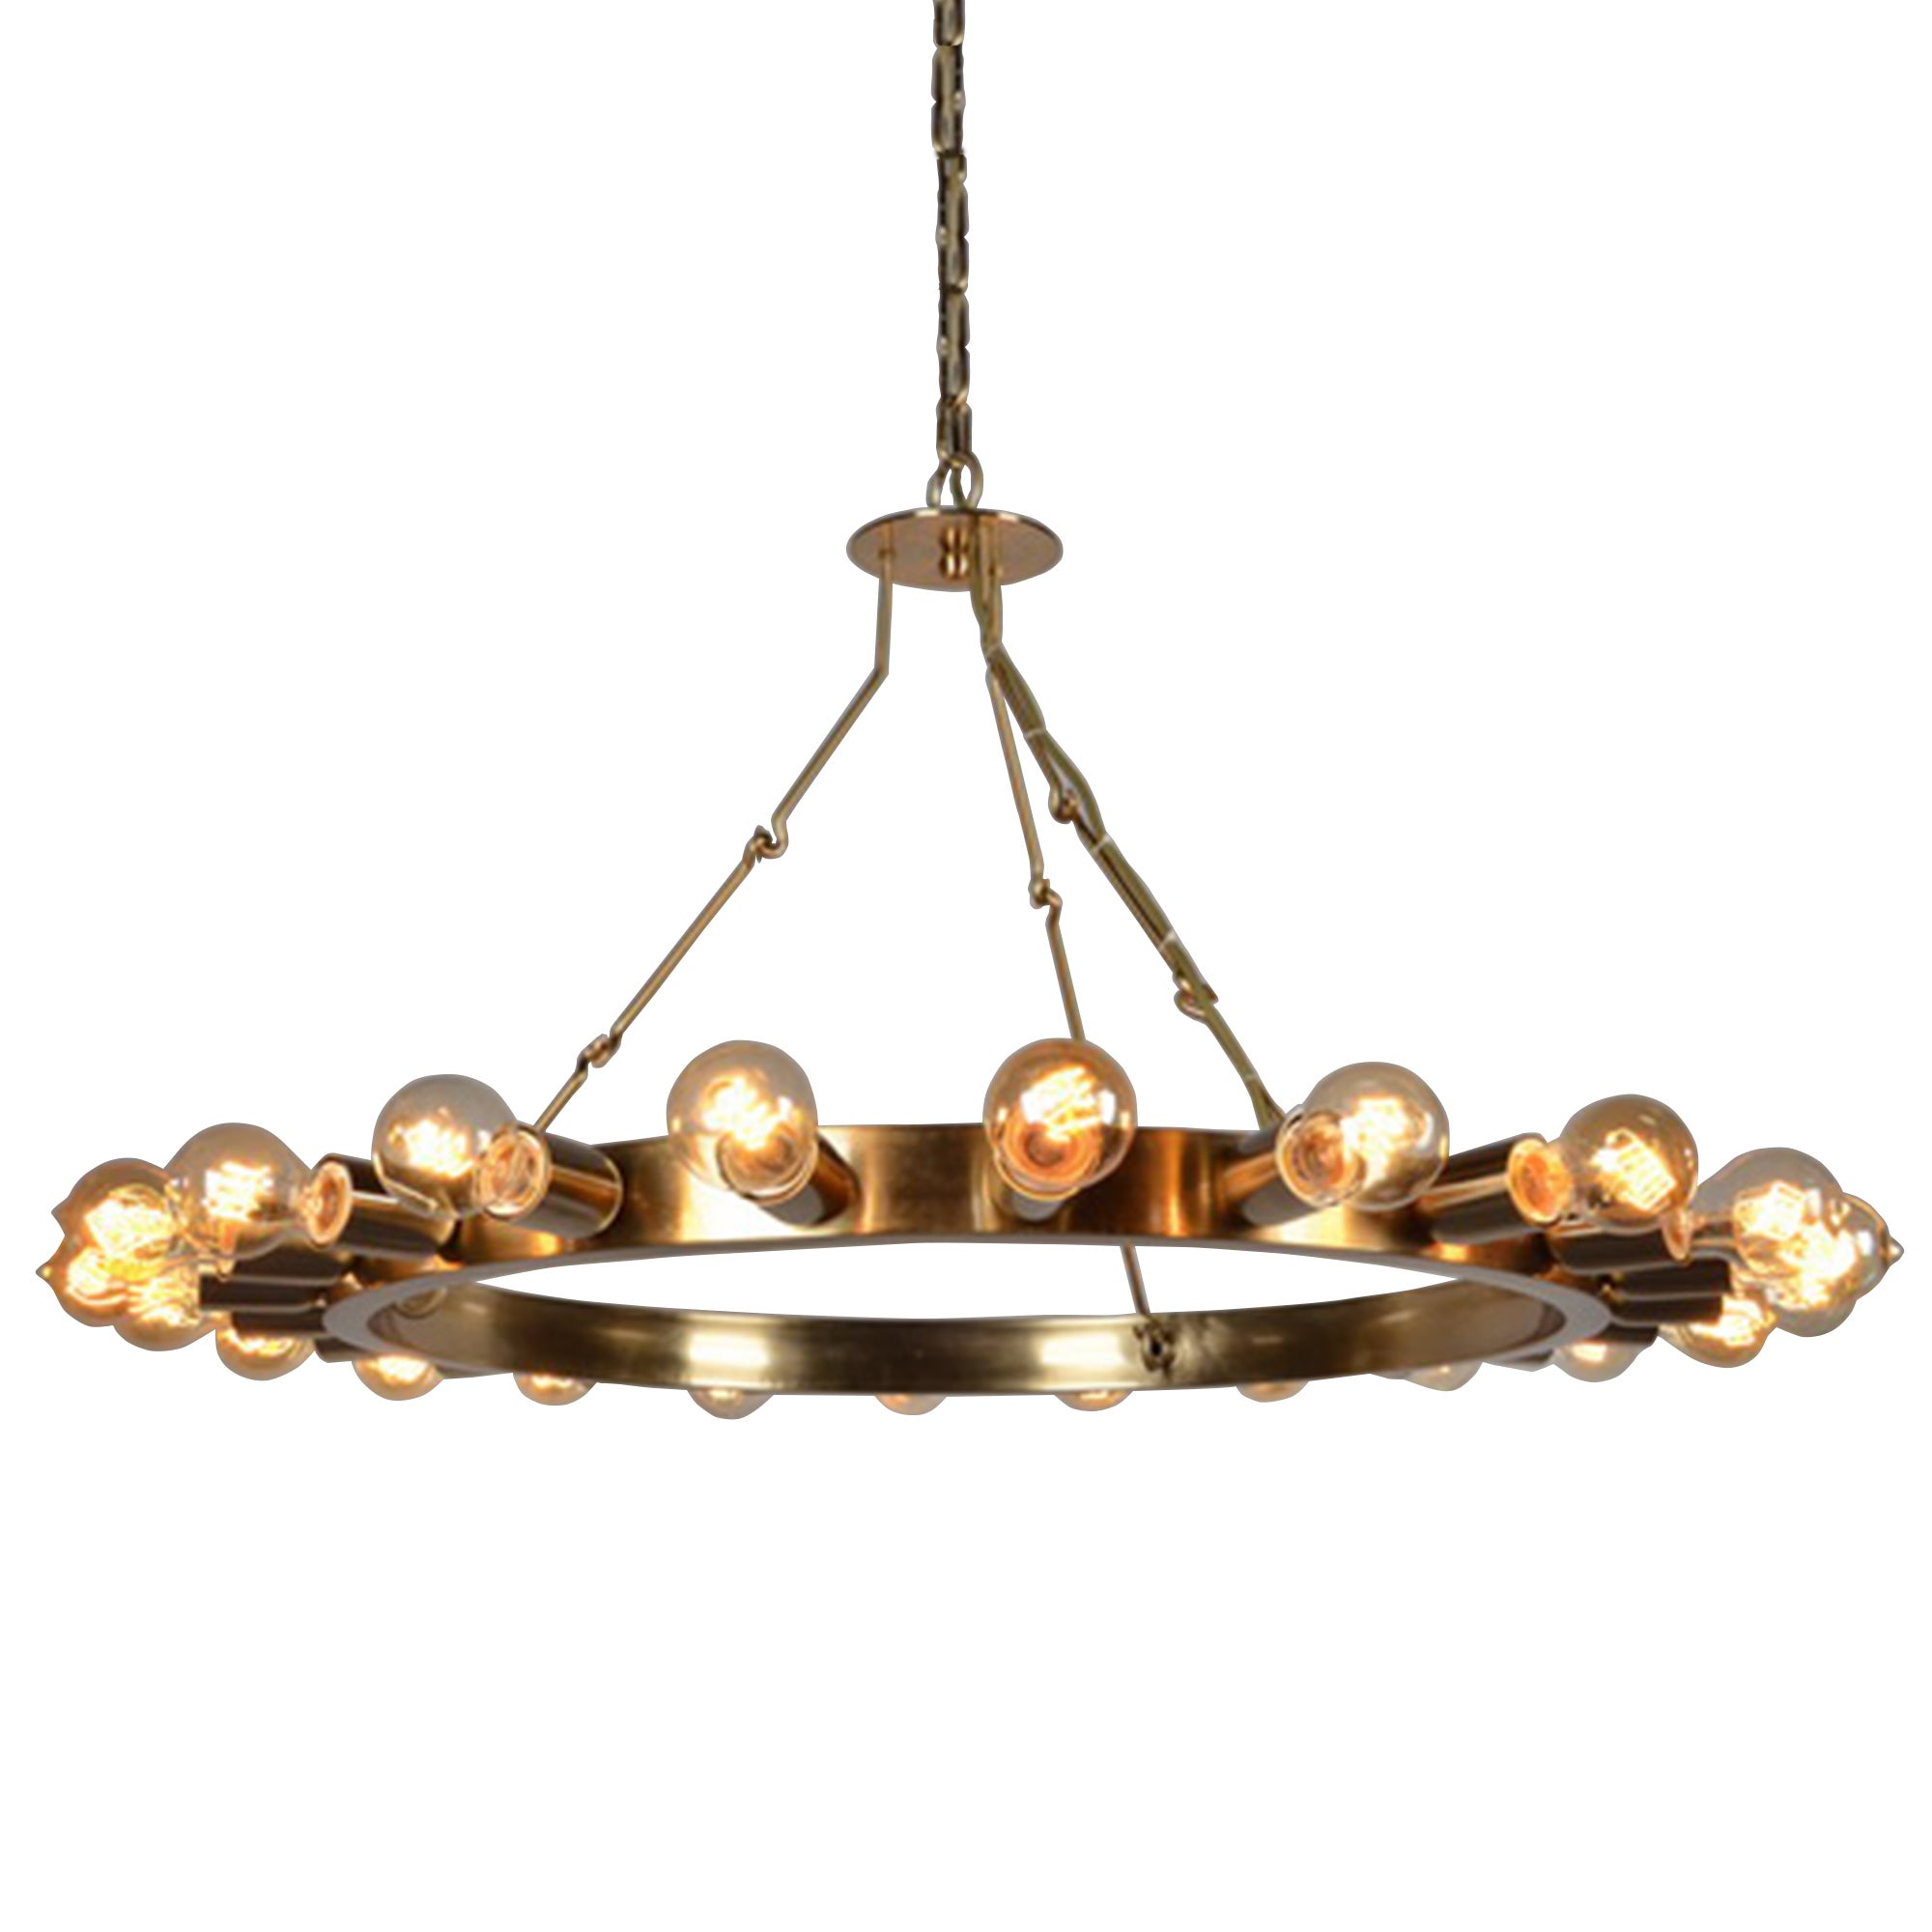 Y-Decor 22 Light Chandelier in Brass finish - Free Shipping Today -  Overstock.com - 18797060